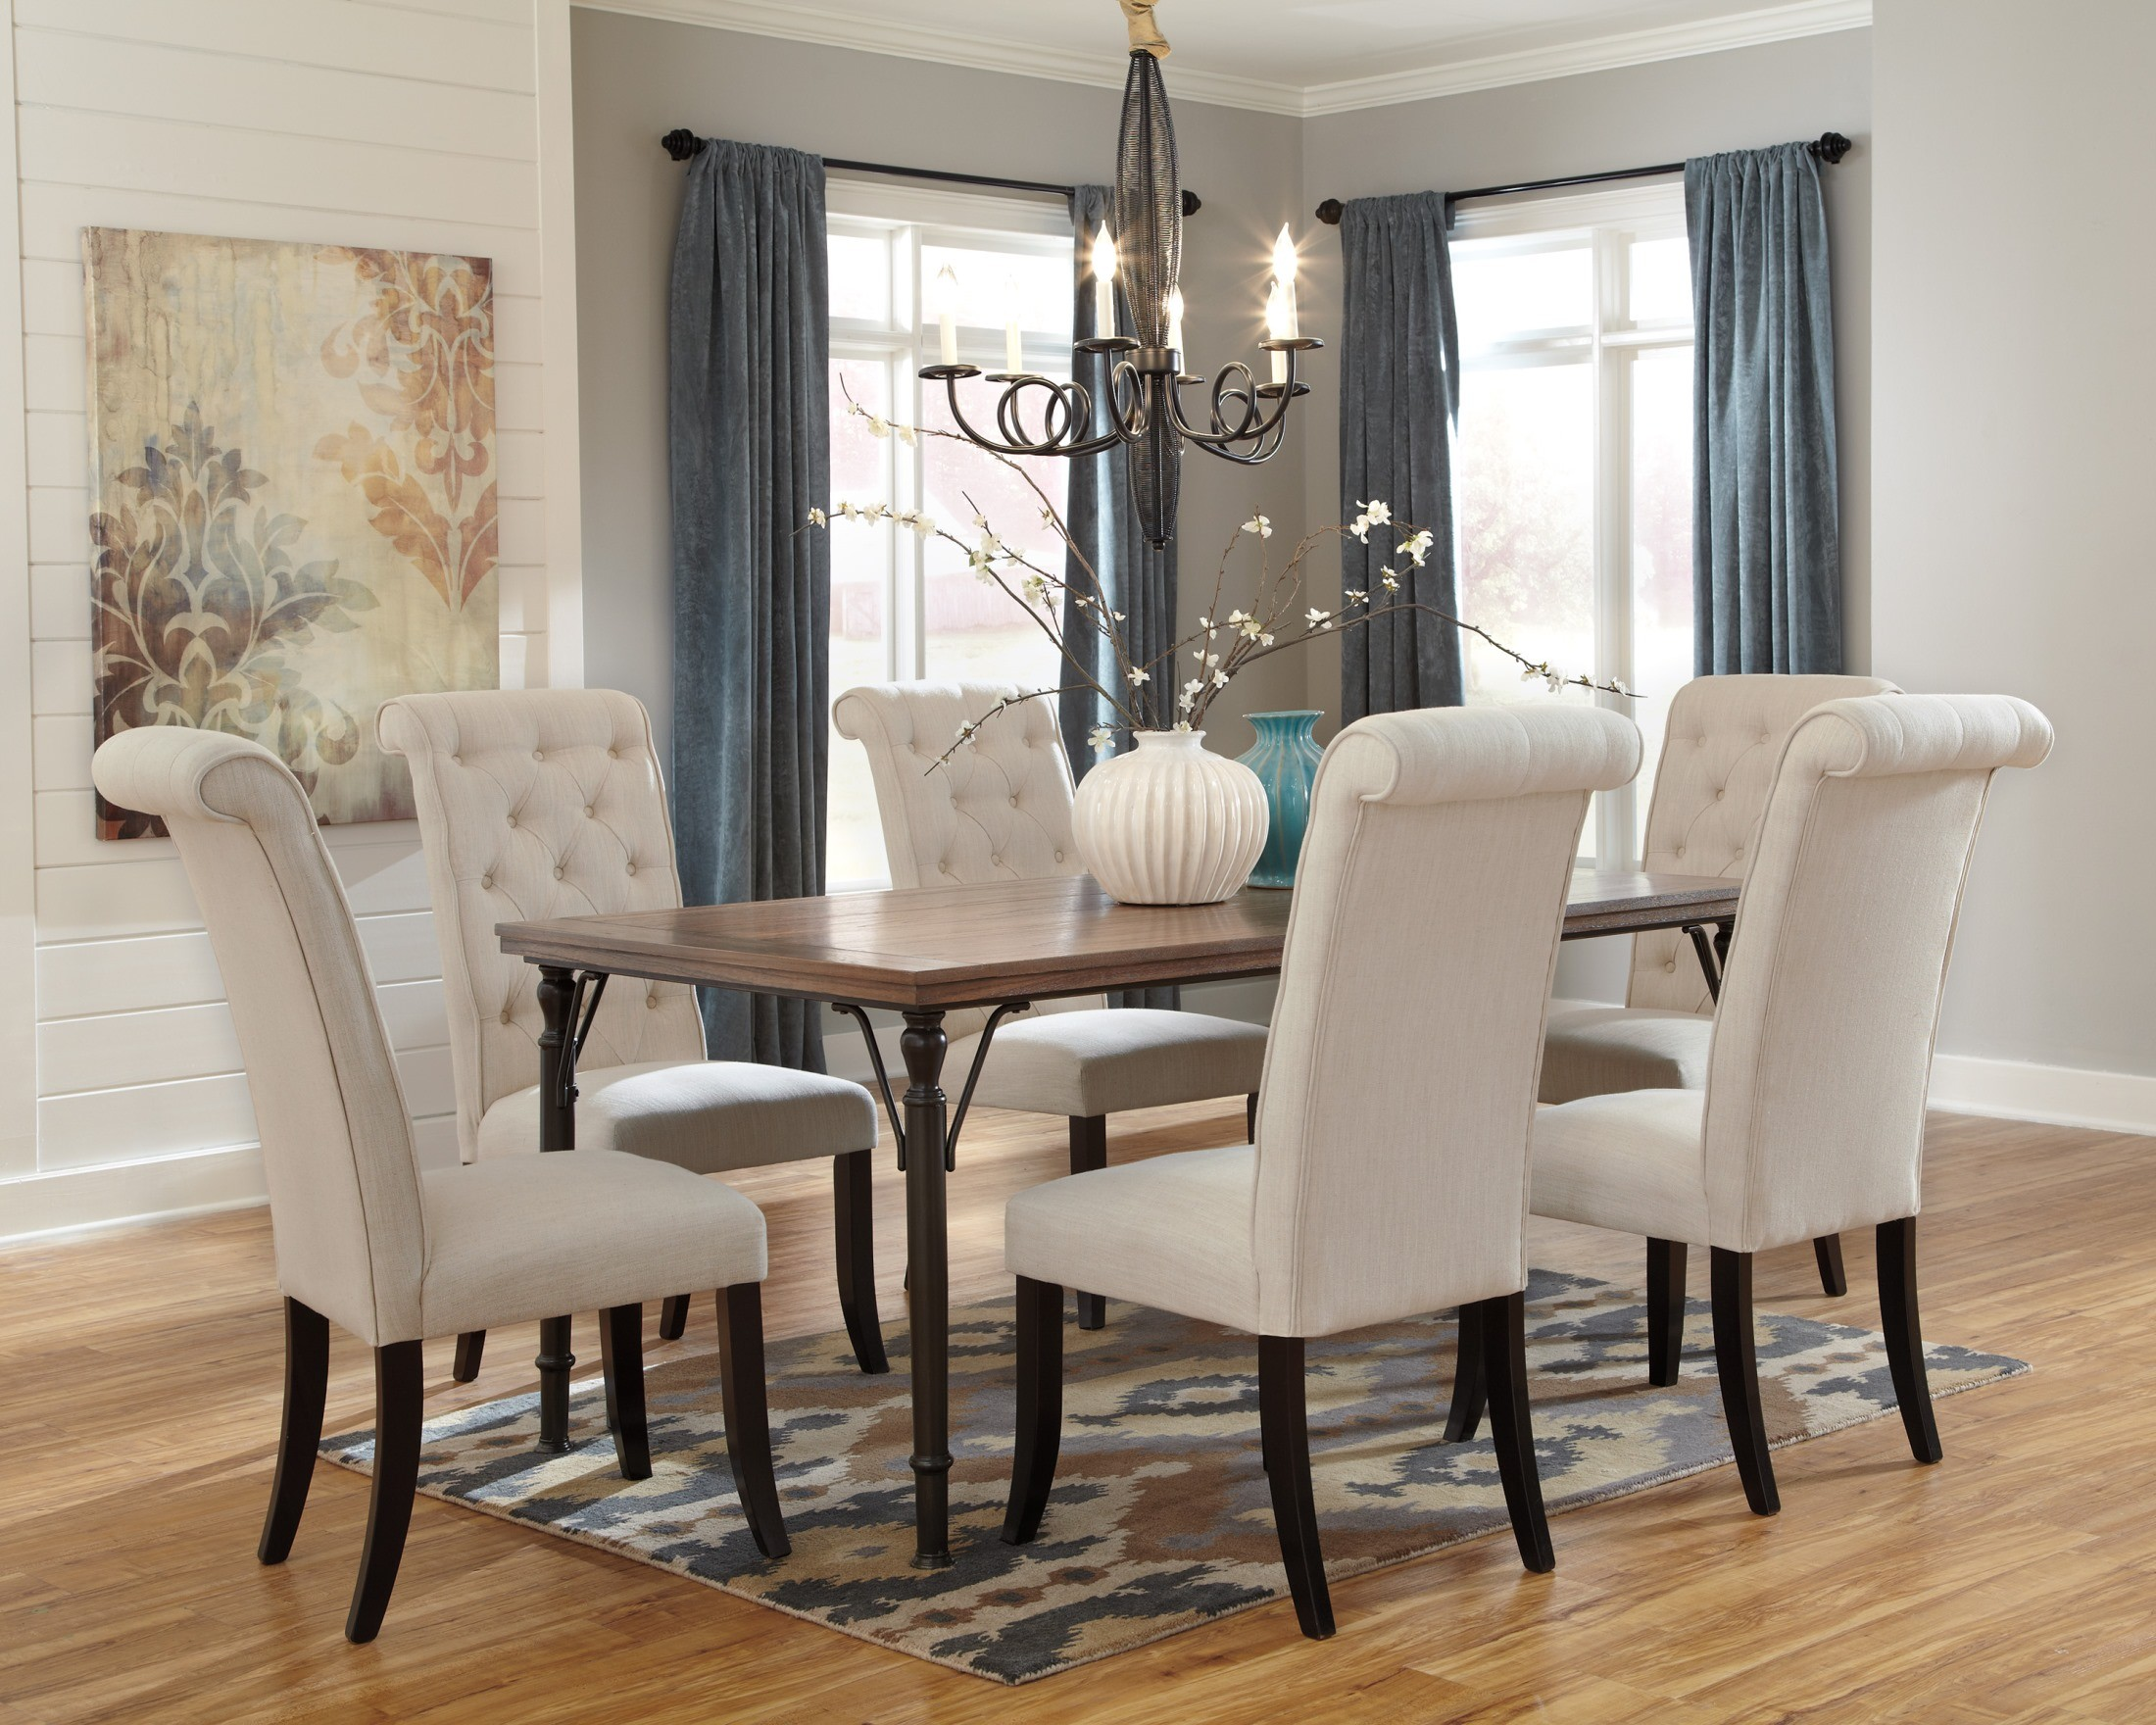 Tripton Rectangular Dining Room Set from Ashley D53025